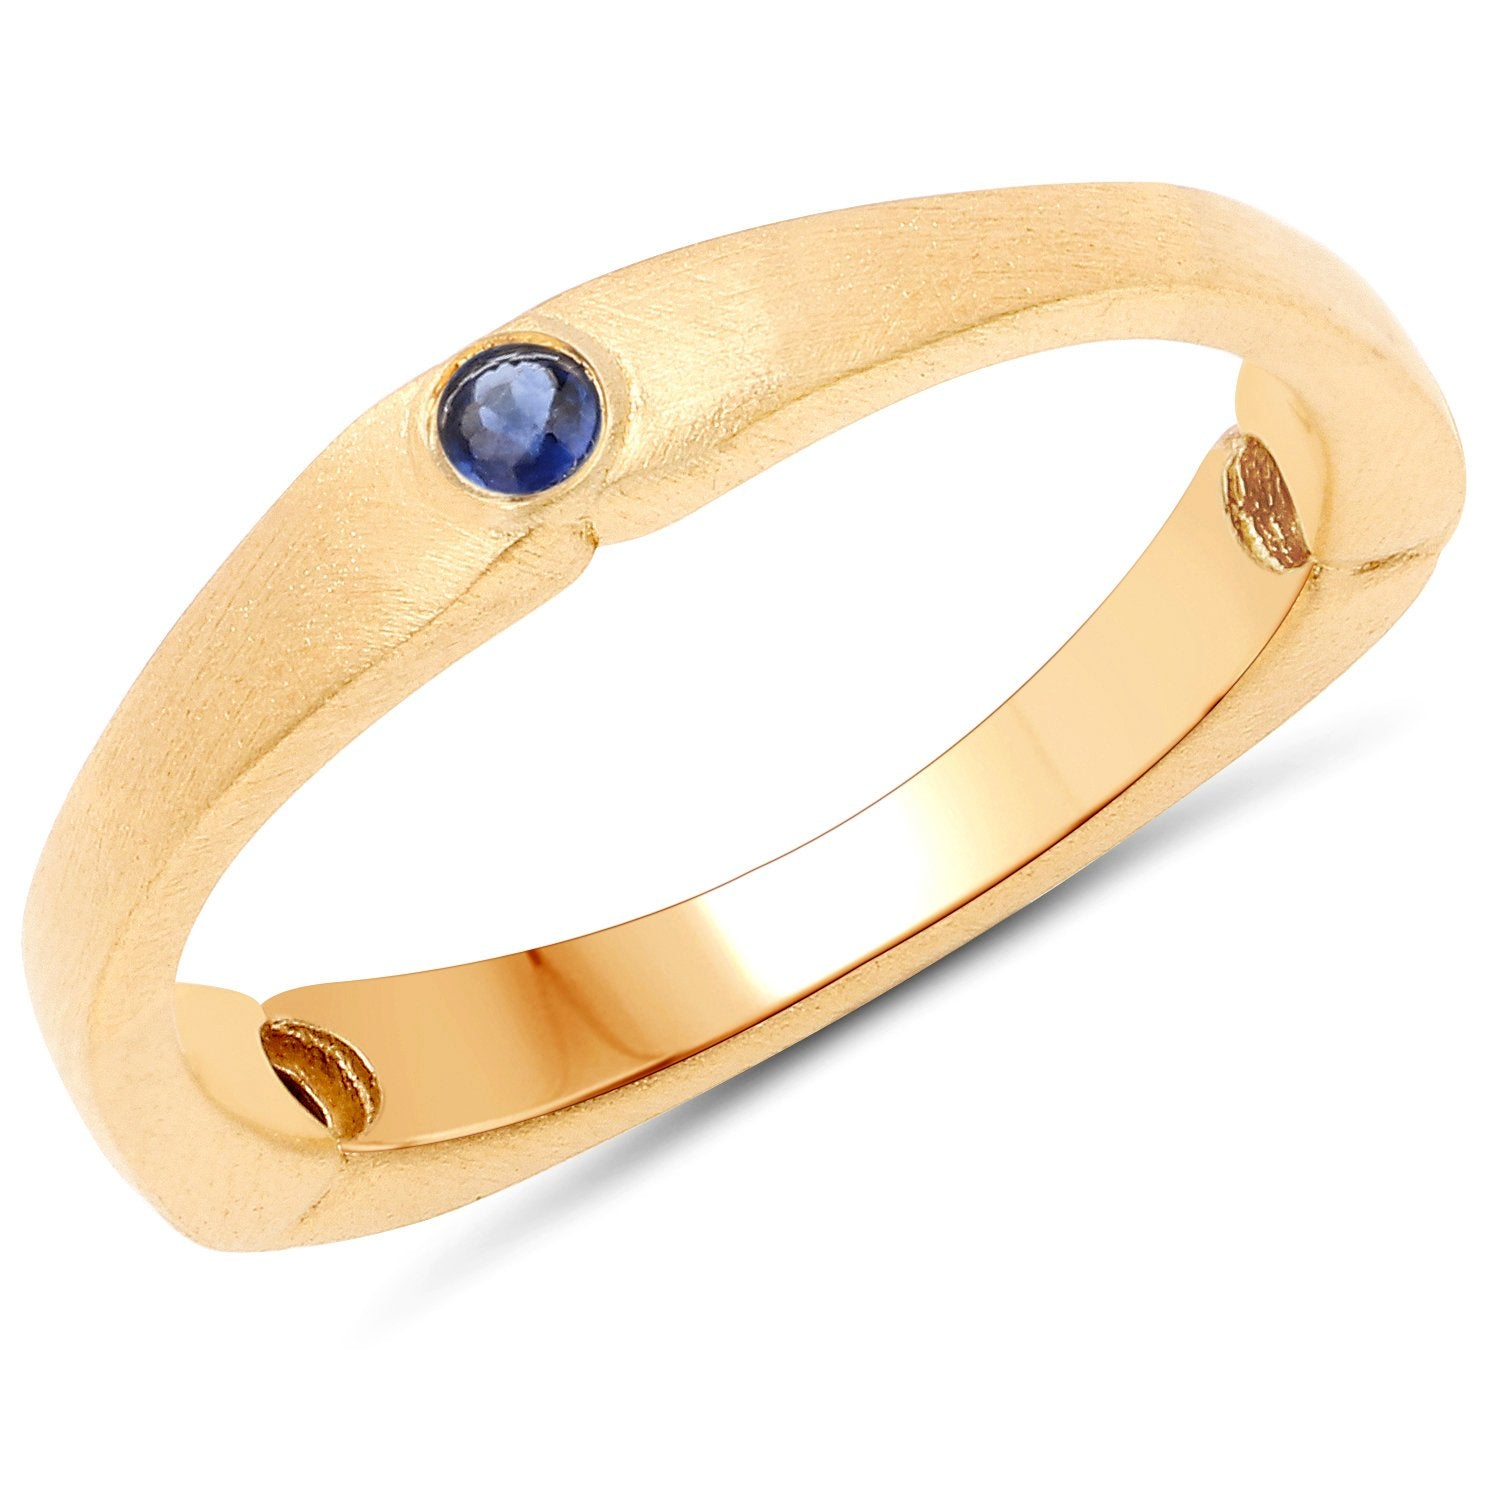 LoveHuang 0.11 Carats Genuine Kyanite Stacking Ring Solid .925 Sterling Silver With 18KT Yellow Gold Plating, Matte Finish